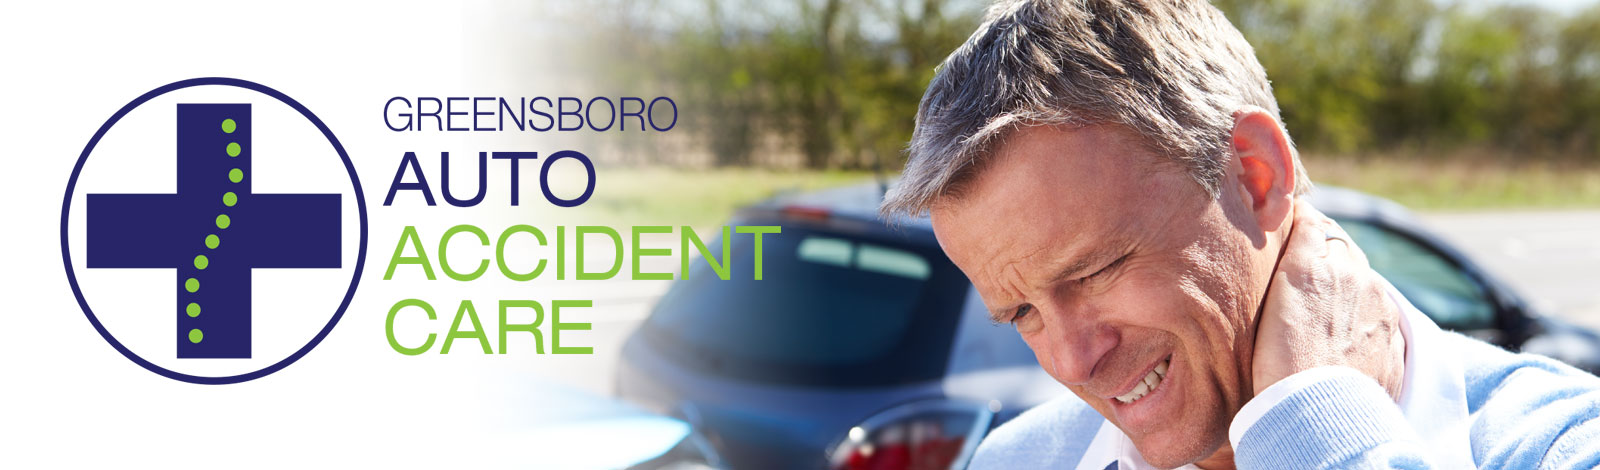 Greensboro Auto Accident Care